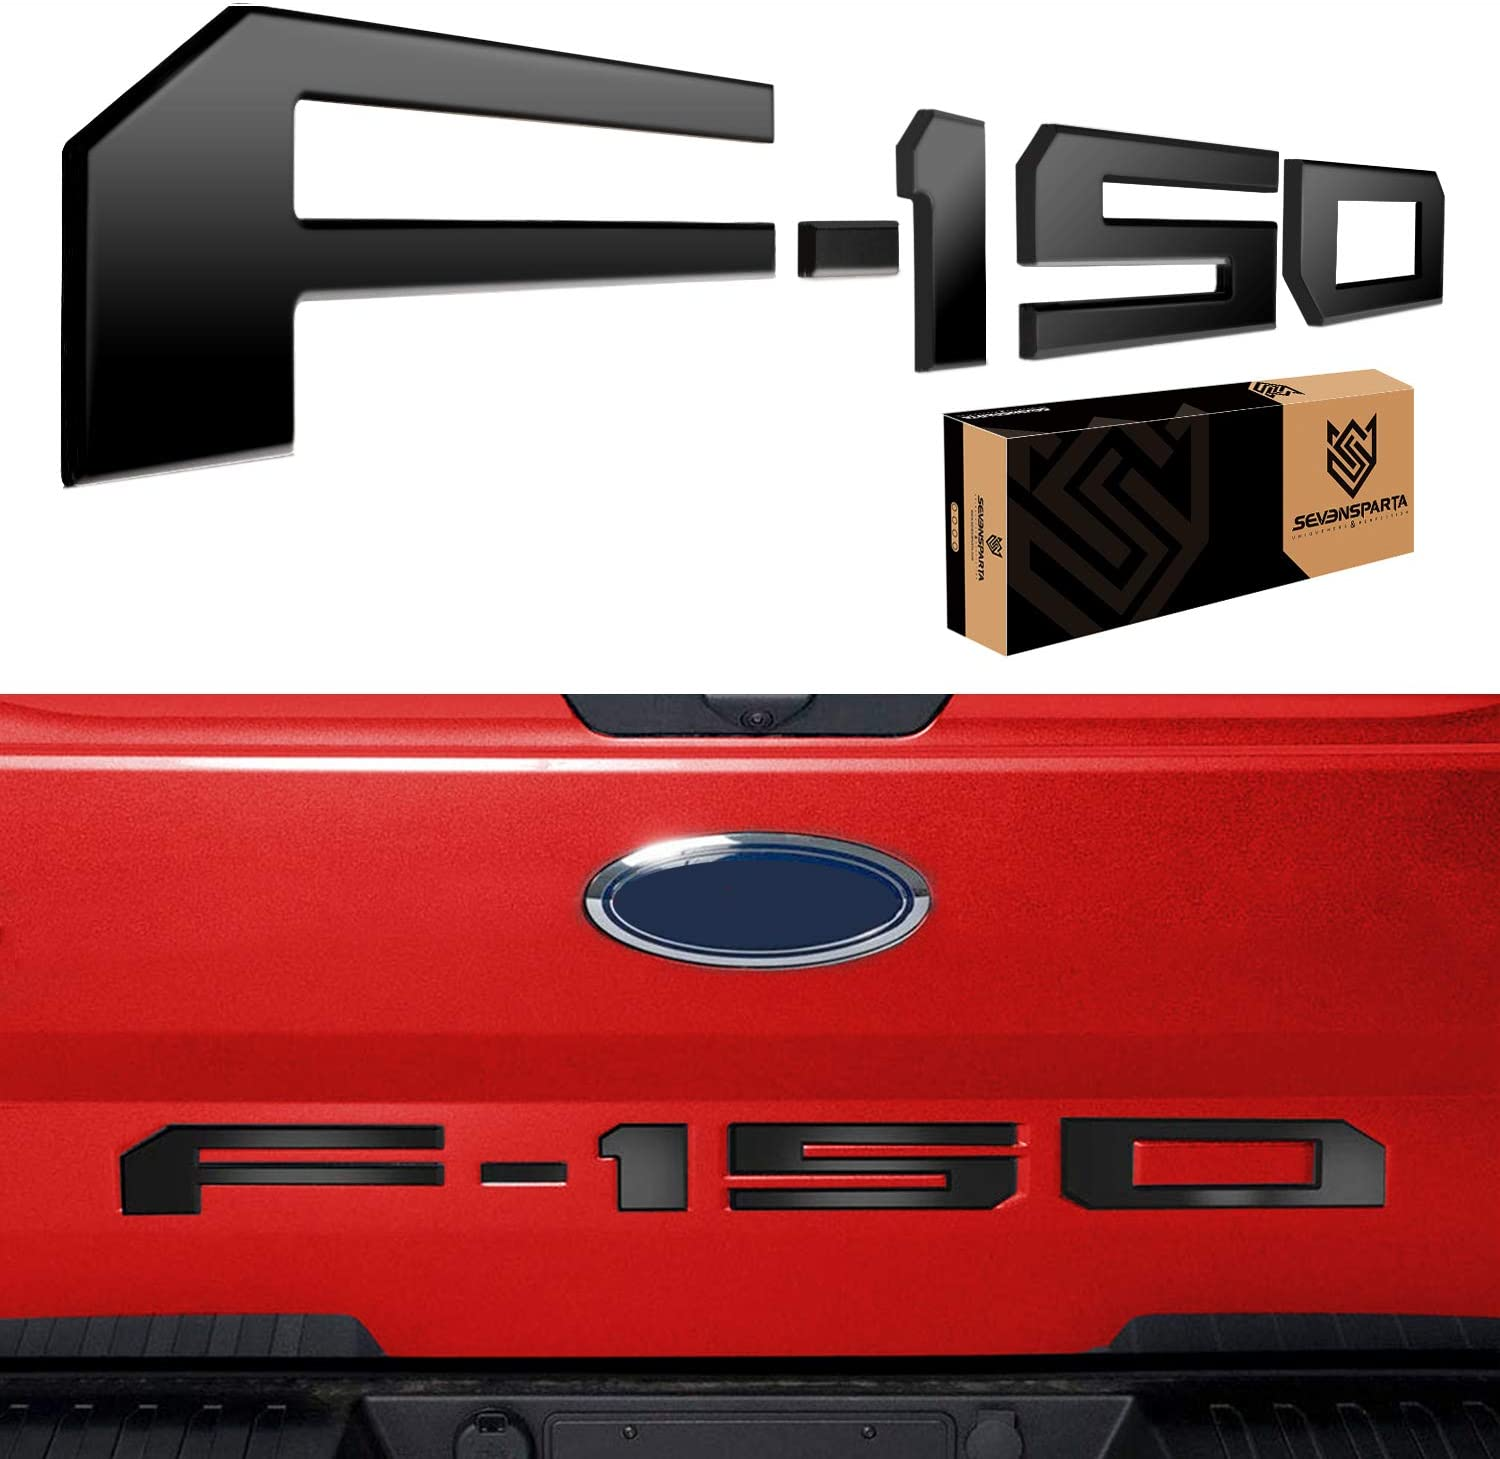 Tailgate Insert Decals Letters Matte Black CarMqx 3D Raised Tailgate Letters for Ford F150 2018-2019 Emblem Inserts